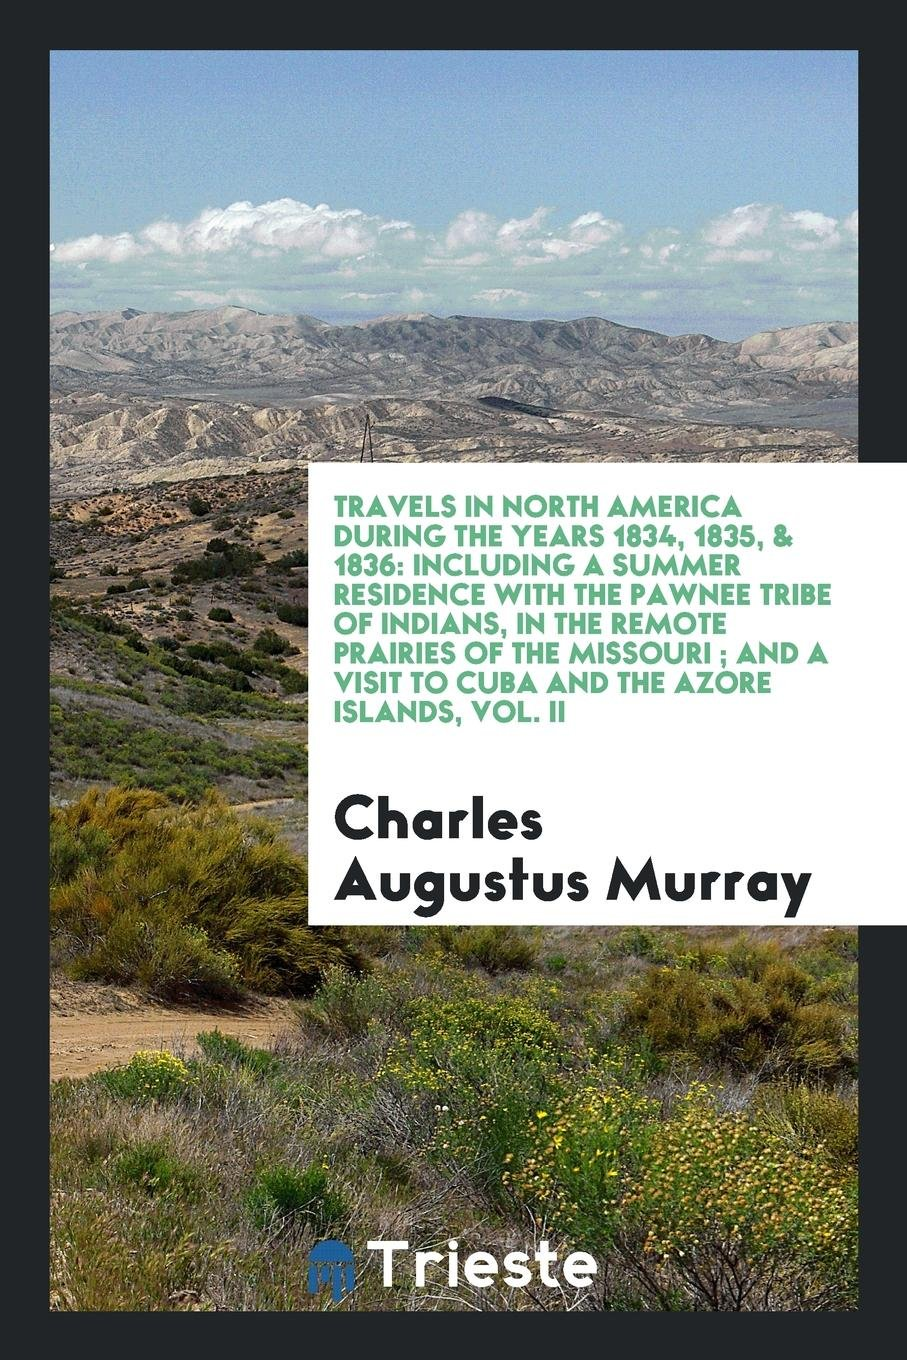 Download Travels in North America During the Years 1834, 1835, & 1836: Including a Summer Residence with the Pawnee Tribe of Indians, in the Remote Prairies of ... Visit to Cuba and the Azore Islands, Vol. II ebook